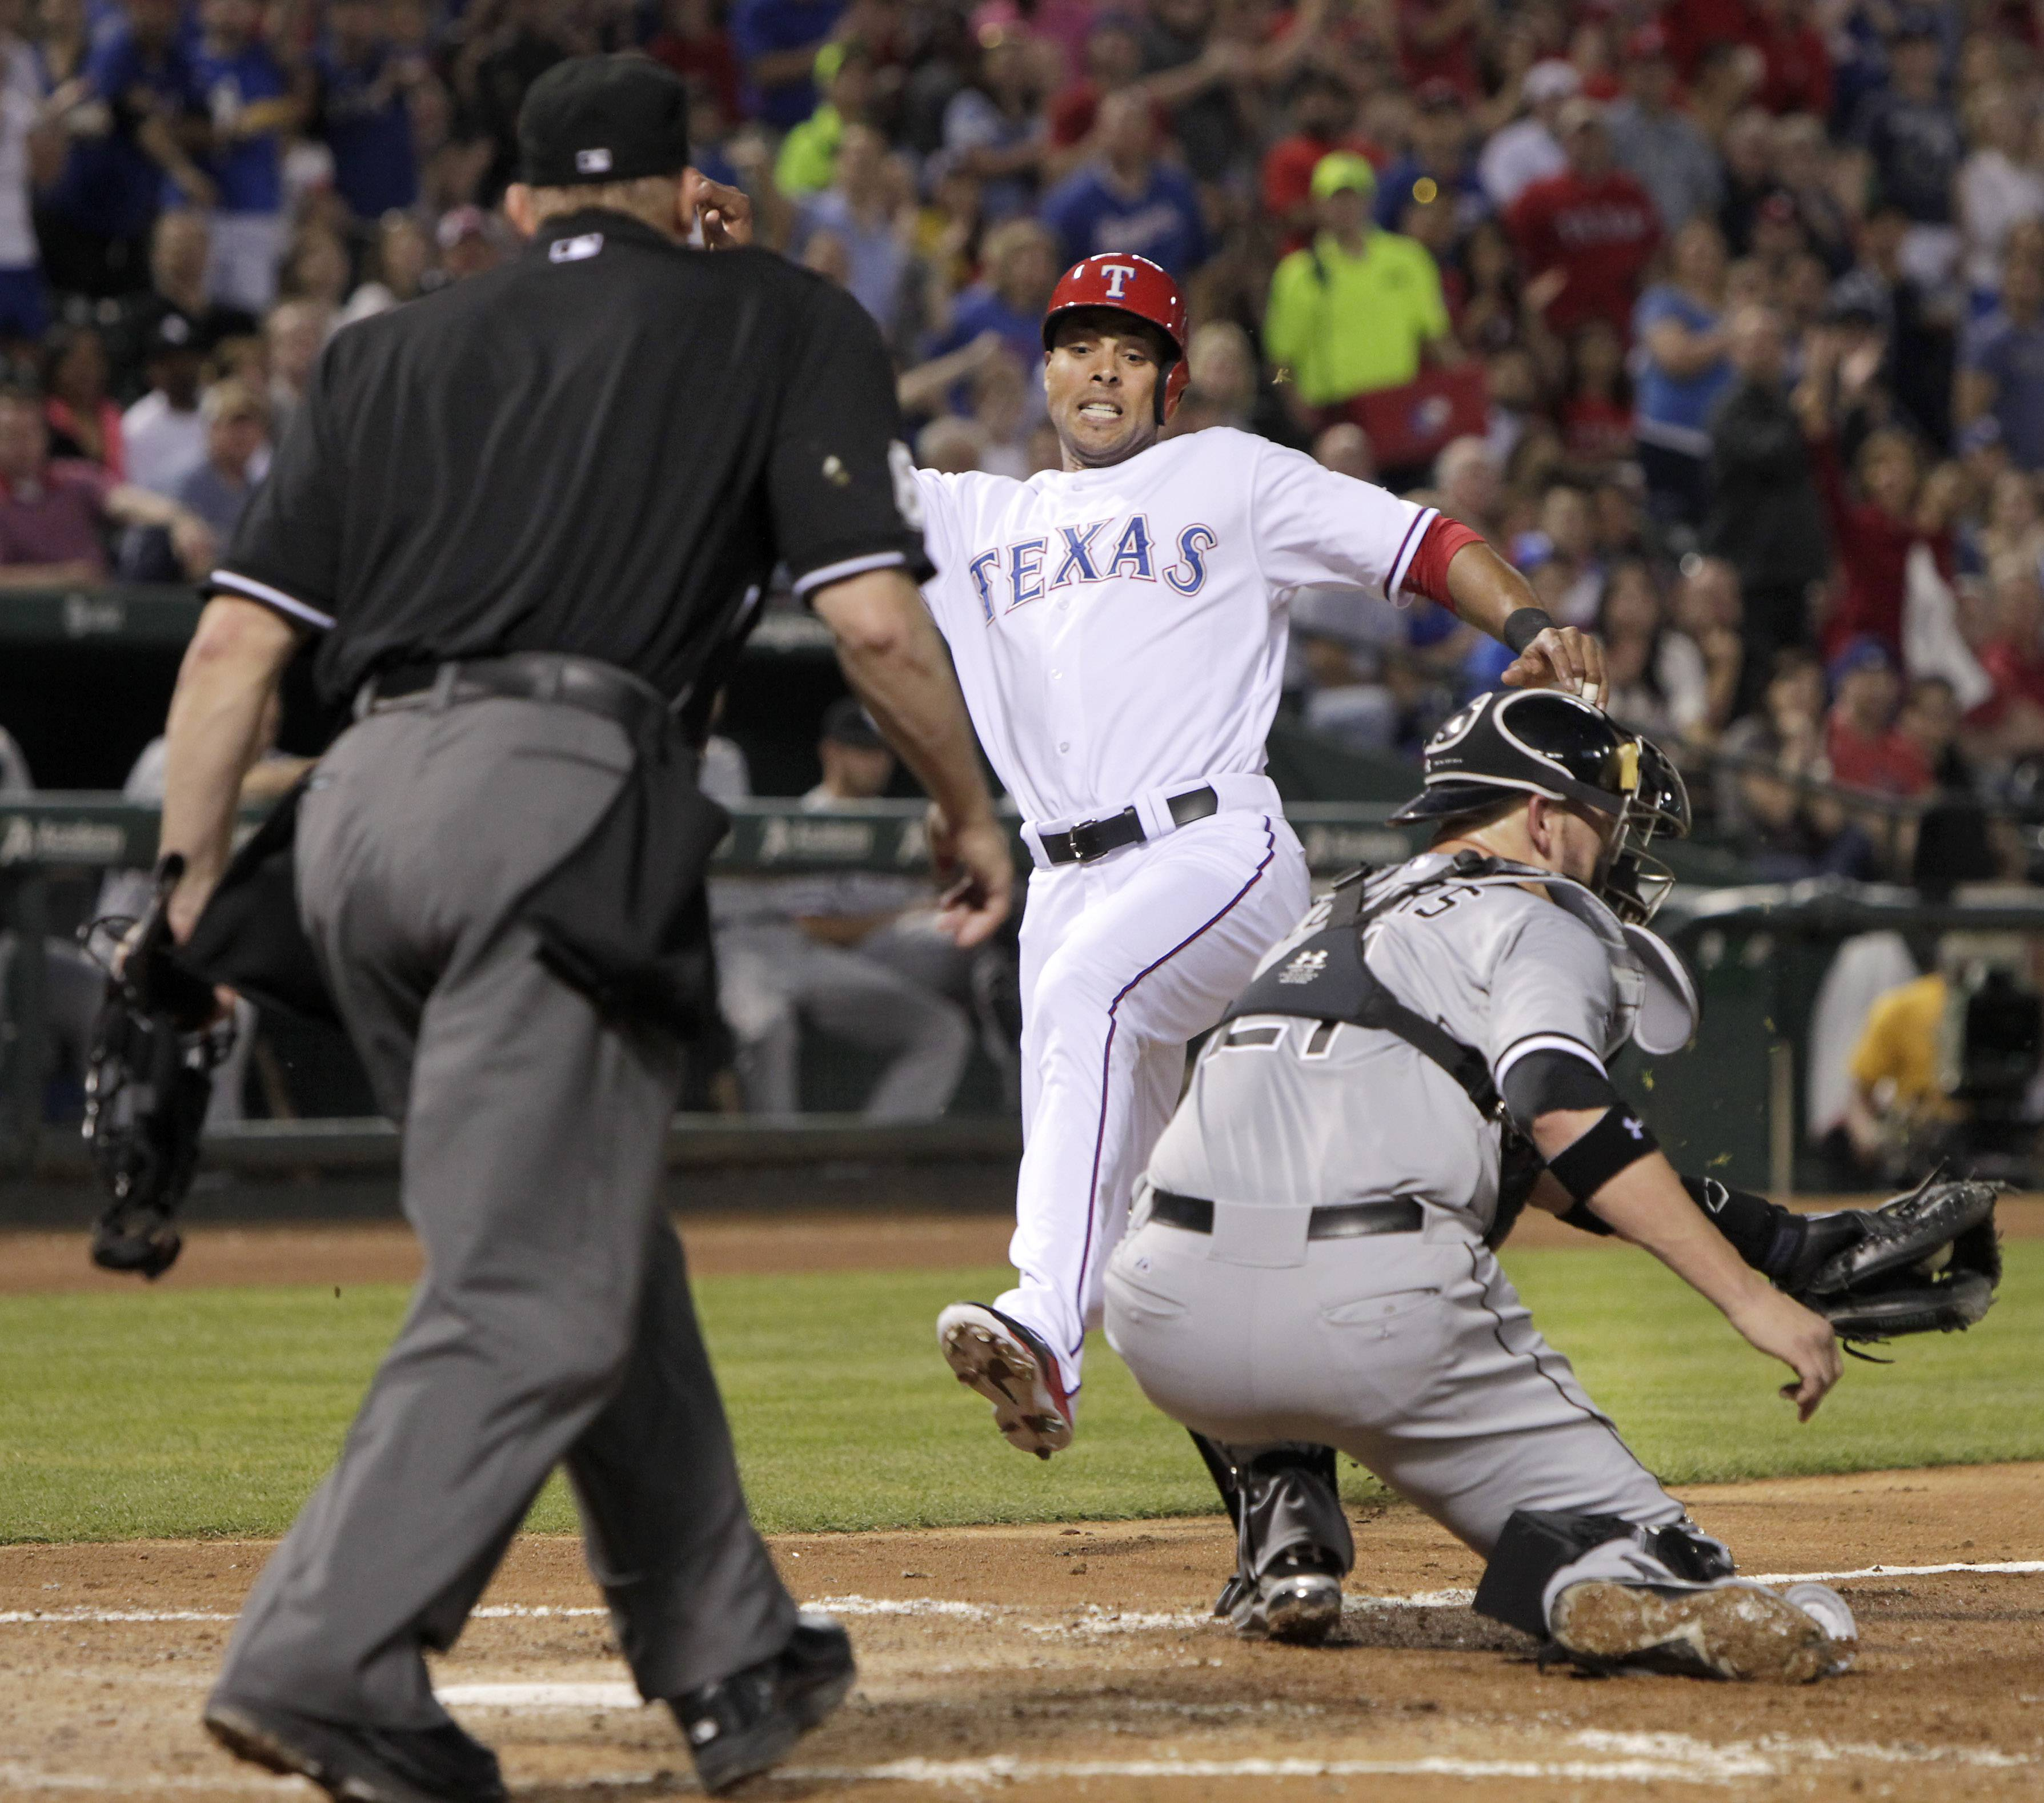 Texas Rangers' Alex Rios (51) slides into home ahead of the tag from Chicago White Sox catcher Tyler Flowers (21) during the third inning of a baseball game Friday, April 18, 2014, in Arlington, Texas. The Rangers won 12-0. (AP Photo/The Dallas Morning News, Brad Loper) MANDATORY CREDIT, NO SALES, MAGS OUT, TV OUT, INTERNET USE BY AP MEMBERS ONLY